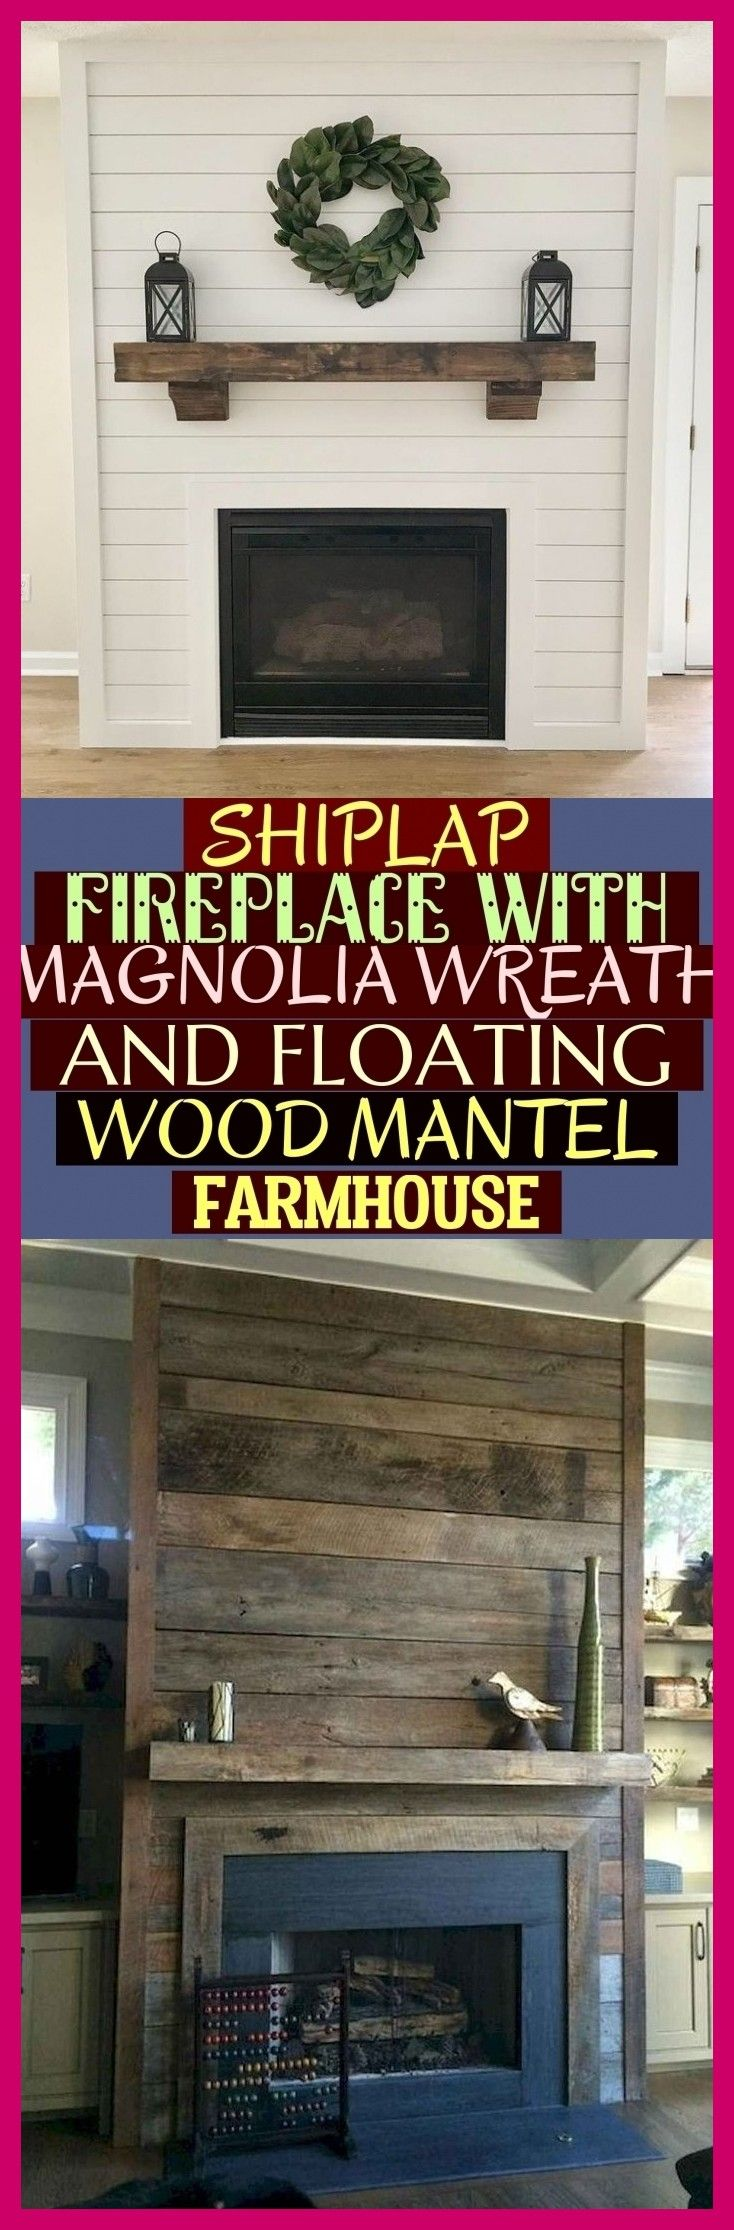 Photo of Shiplap Fireplace With Magnolia Wreath And Floating Wood Mantel Farmhouse ! #far…